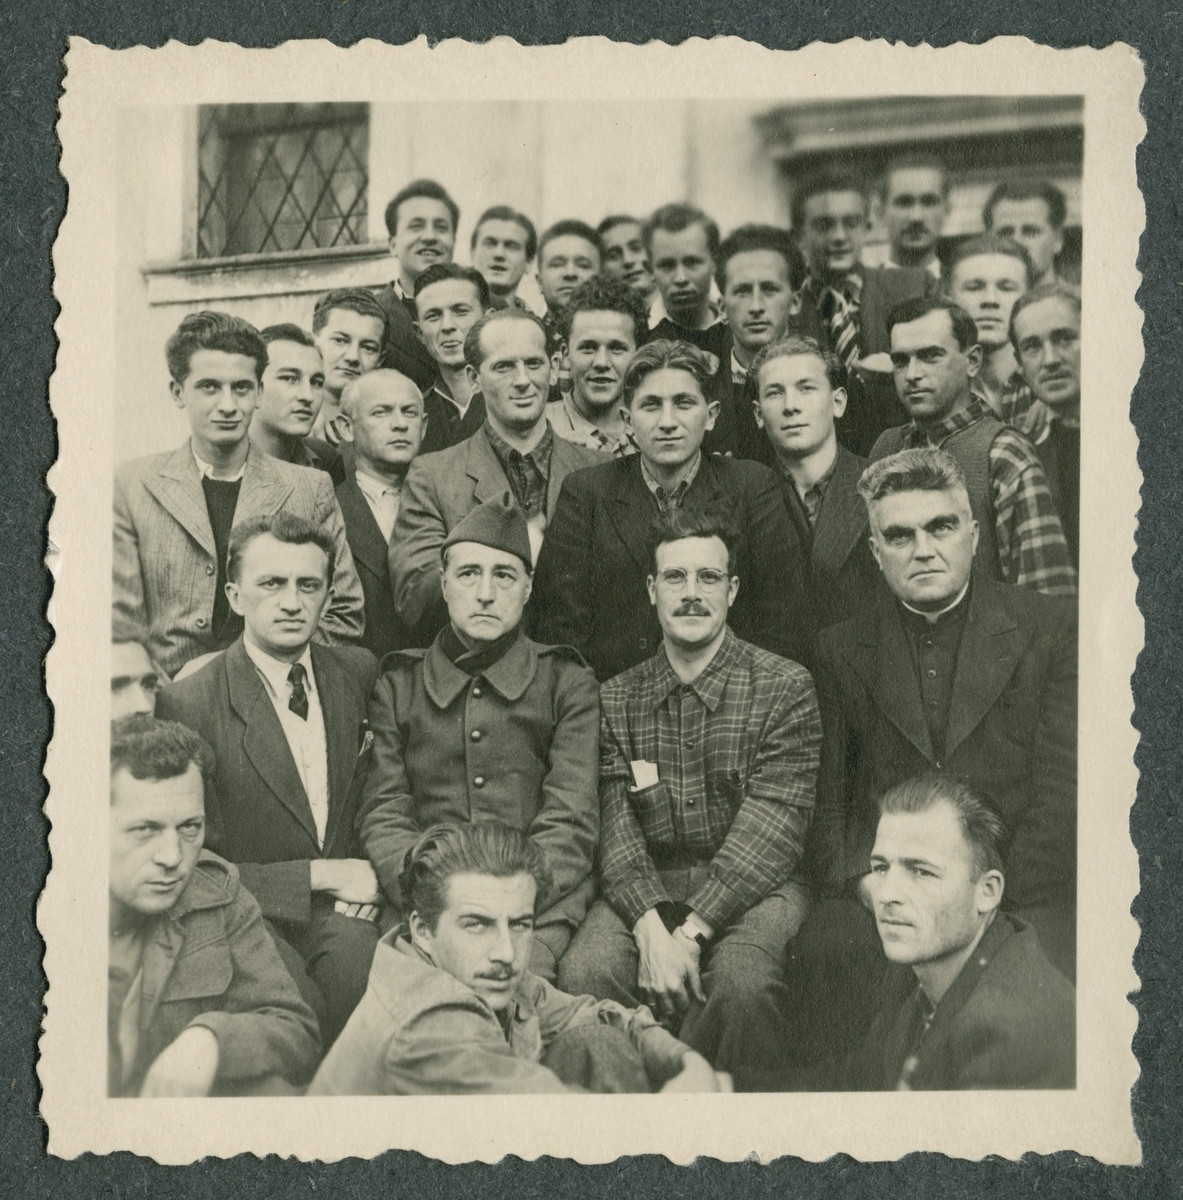 Group portrait of prisoners in Ilag VII, a camp for foreign nationals.  The man in the middle wearing the cap was a prisoner interpreter who could speak to the German authorities.  Father Sledz is in the priest's habit in the second row on the right